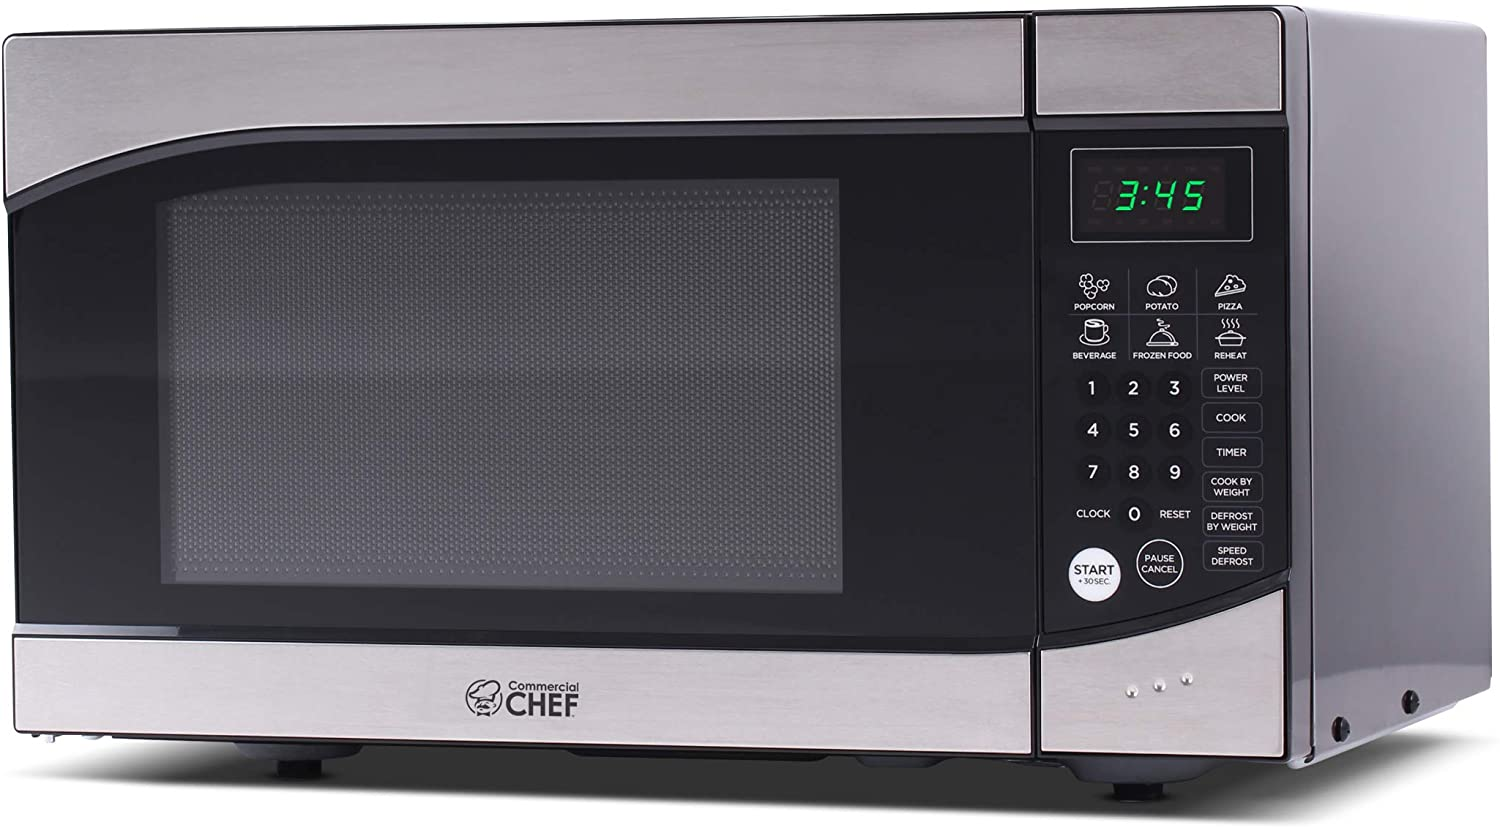 Commercial Chef CHM009 900 Watt Microwave 0.9 cu. ft.